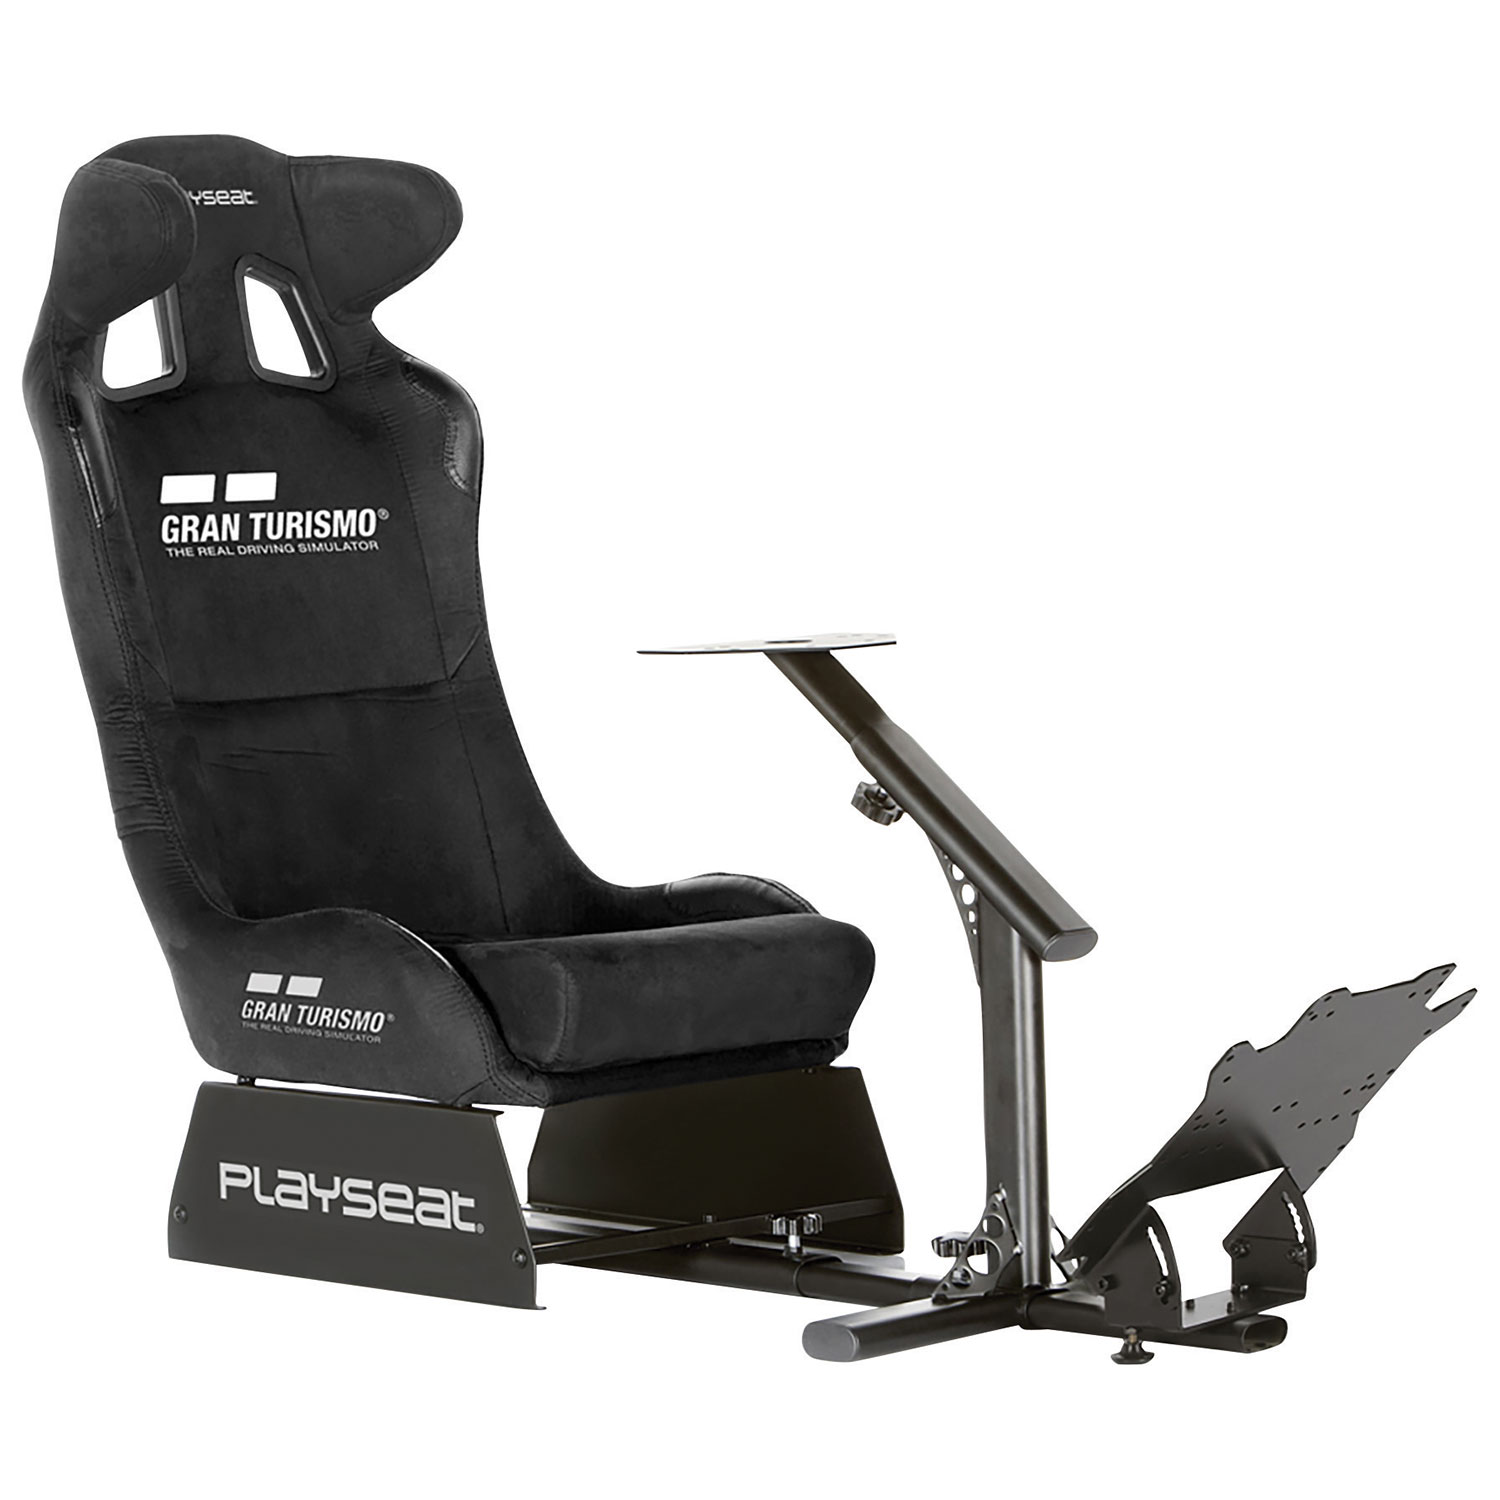 Playseat Gran Turismo Gaming Chair Black Gaming Chairs Best